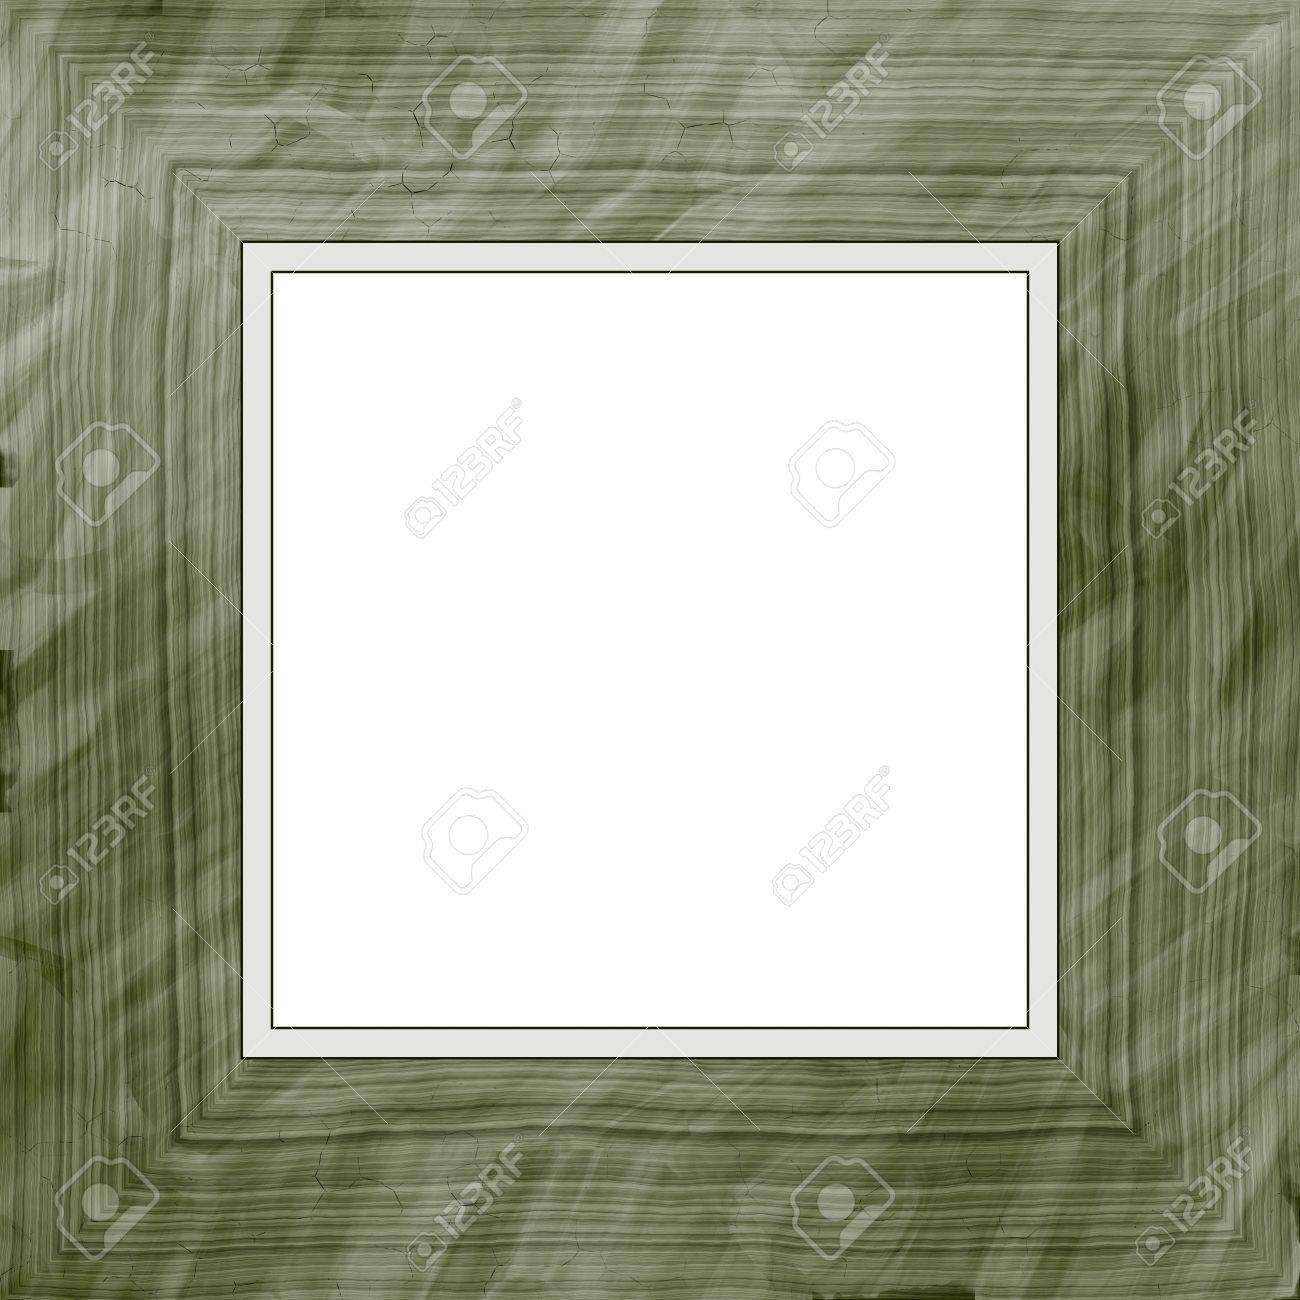 Square High Quality High Resolution Plain Wooden Frame Stock Photo ...